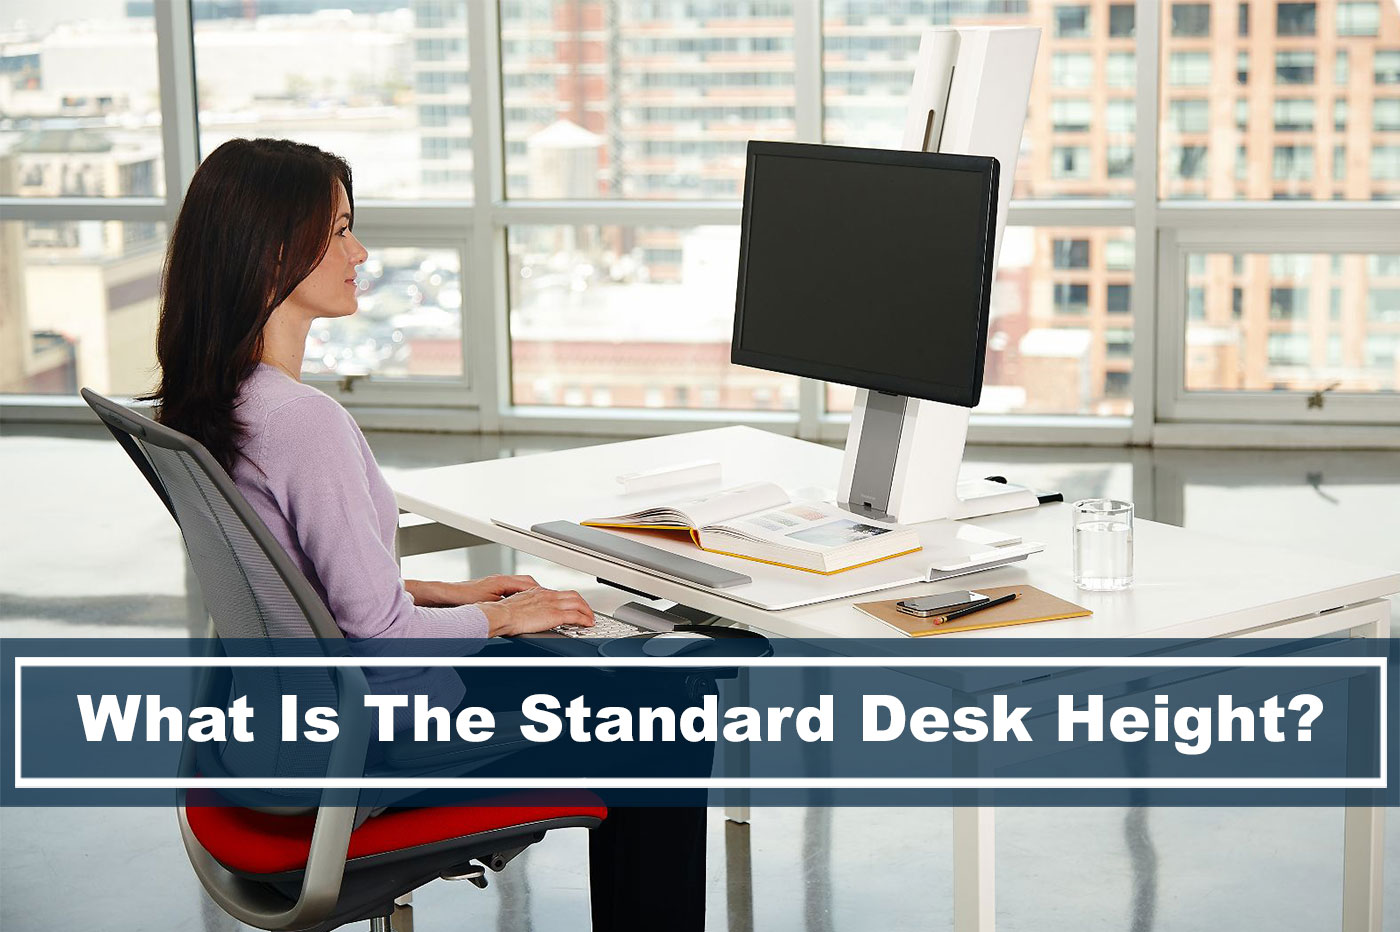 standard desk height featured image